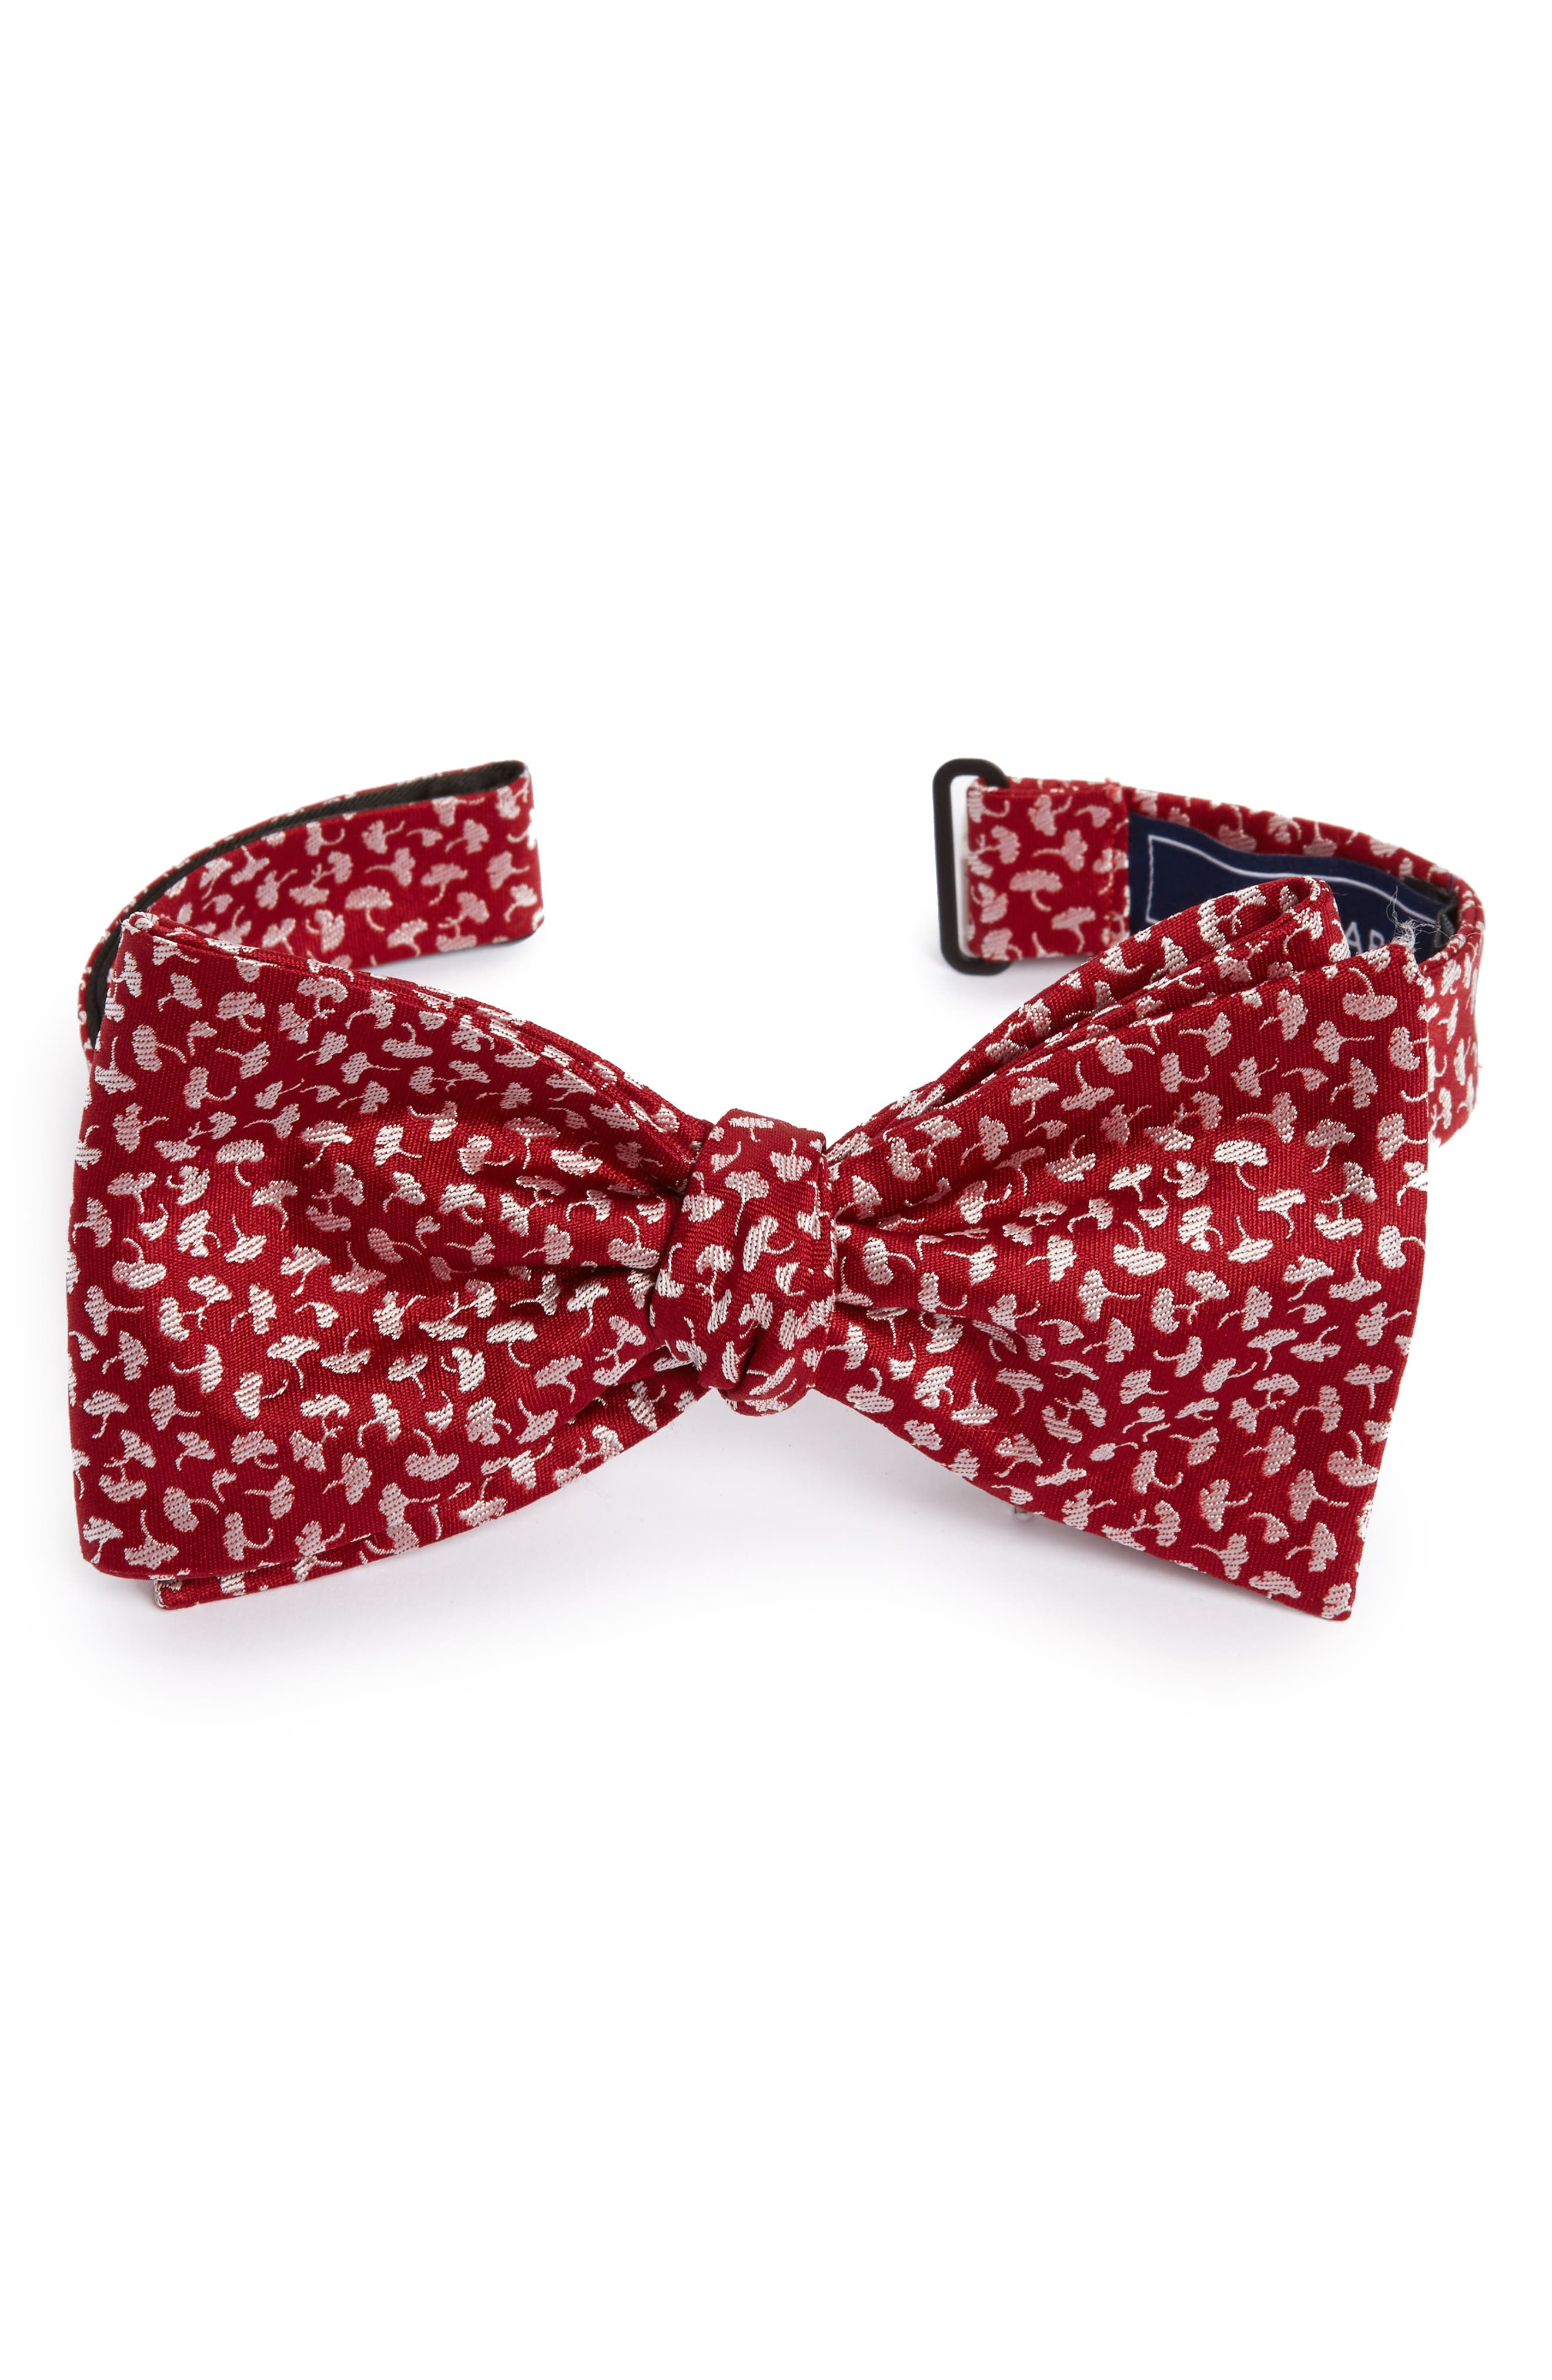 THE TIE BAR True Floral Silk Bow Tie